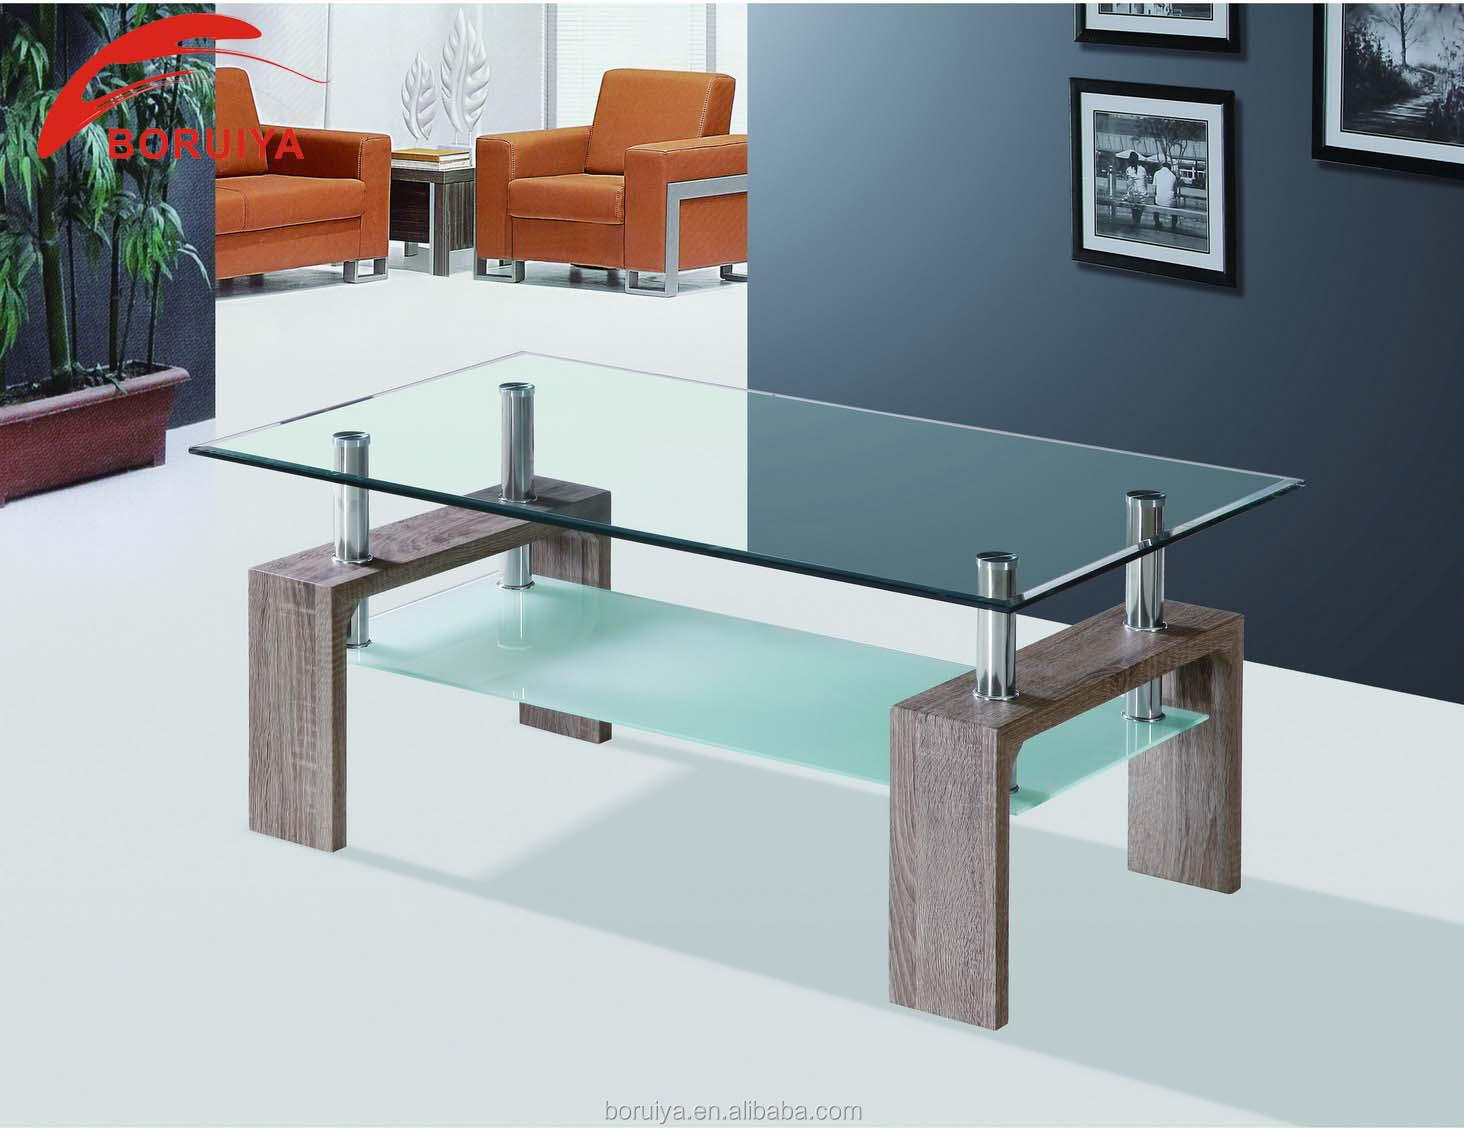 table design coffee table tempered glass top buy modern style design